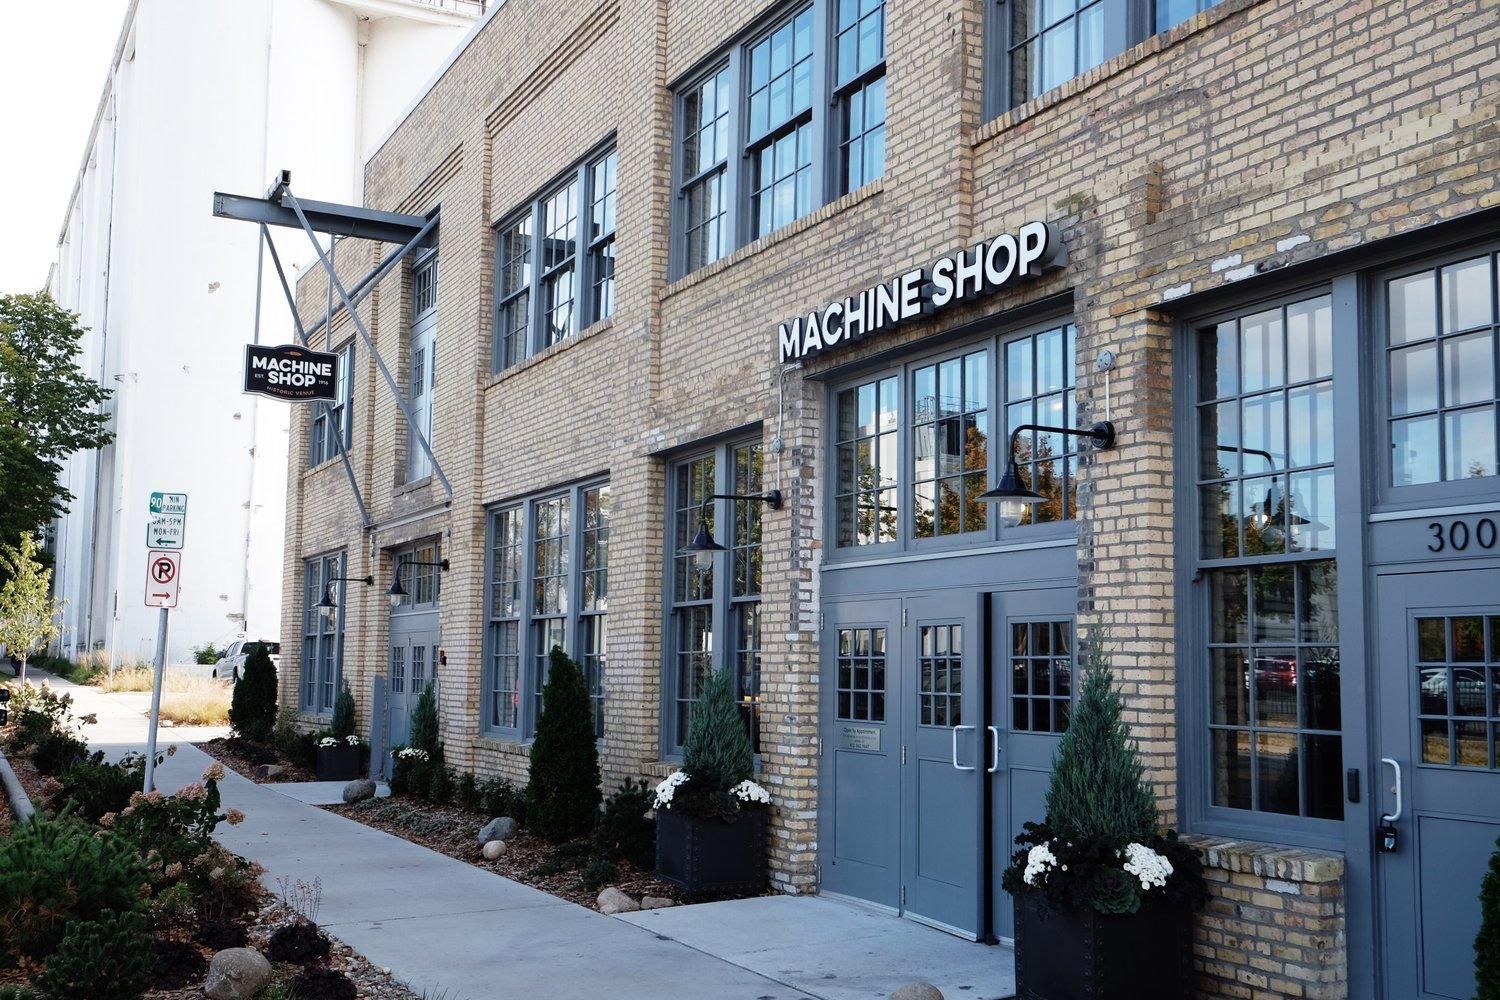 Machine Shop Corporate Events Wedding Locations Event Spaces And